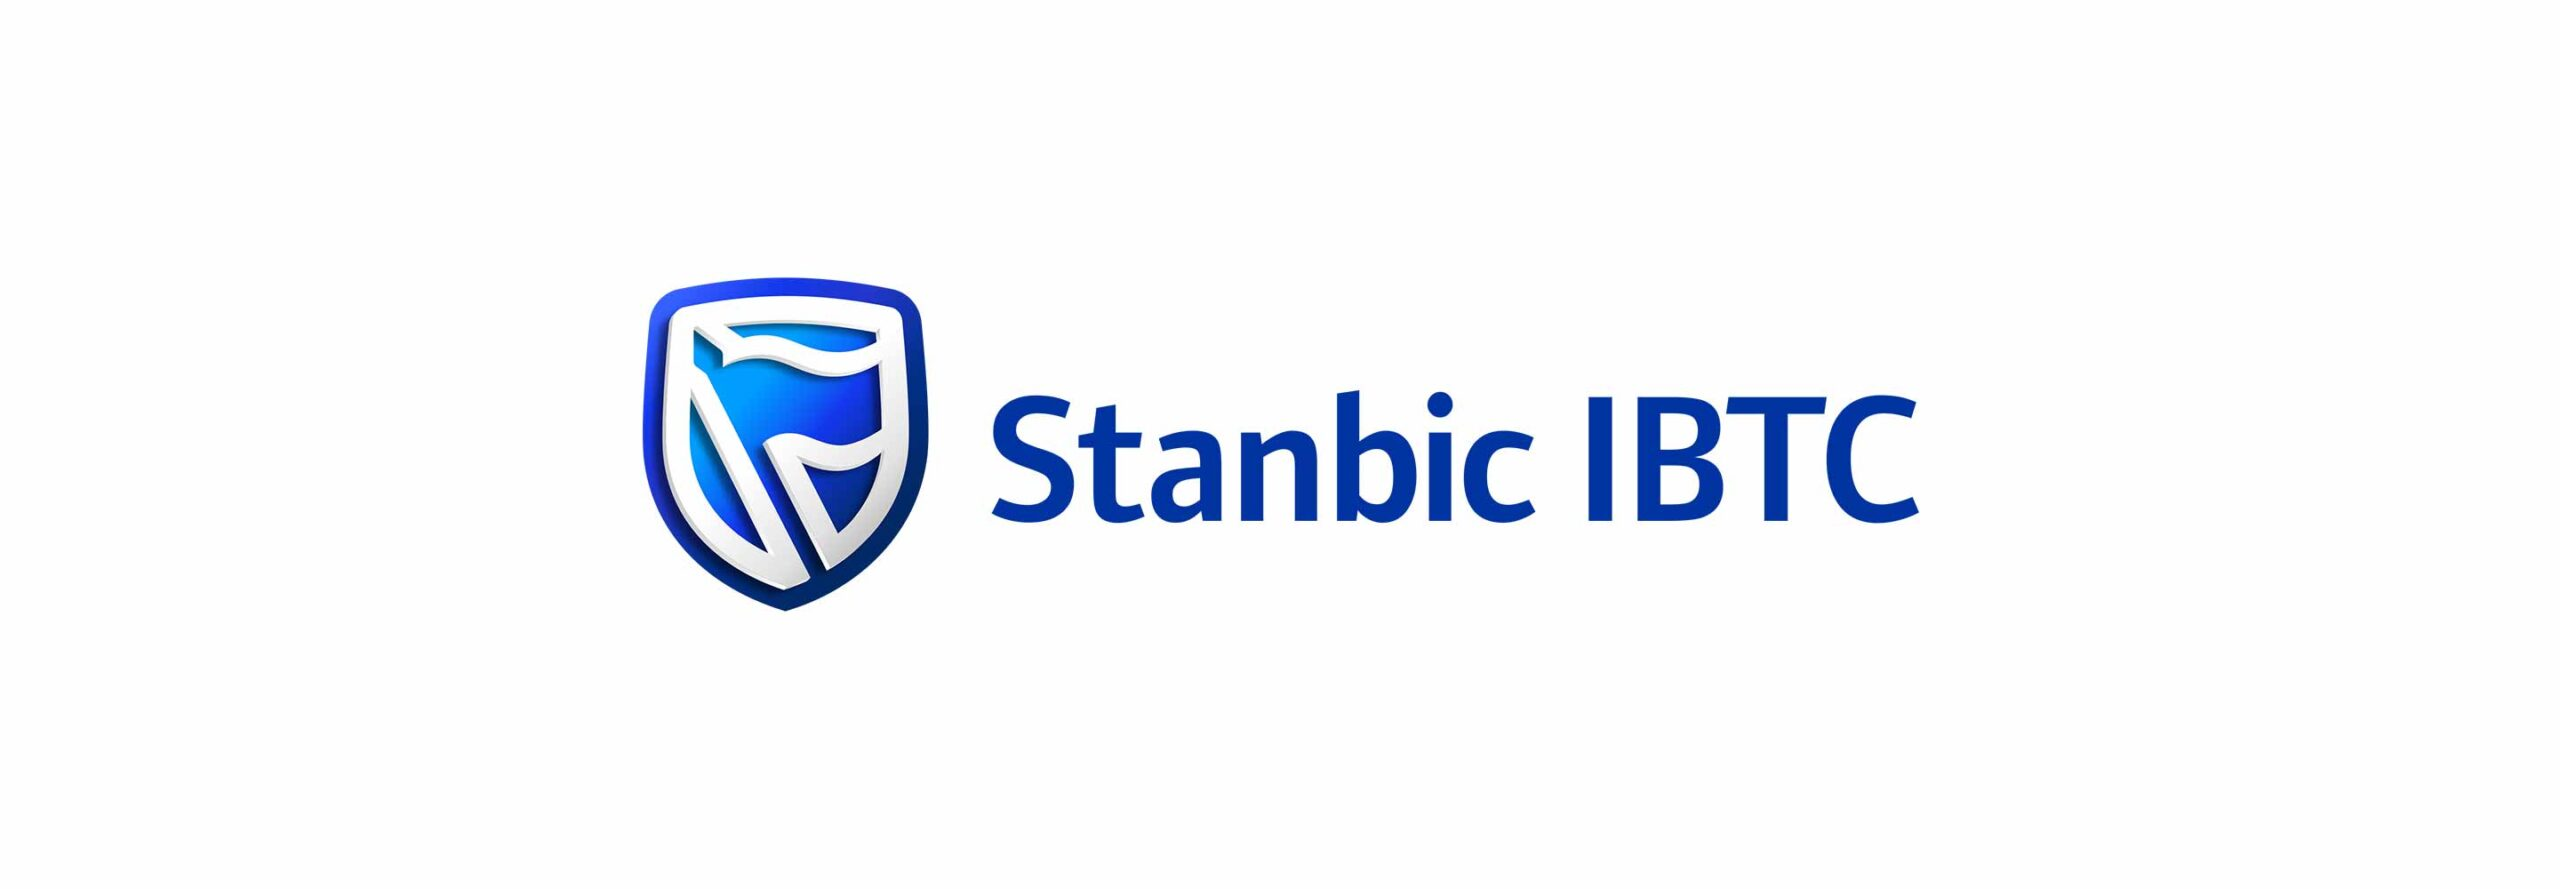 Stanbic IBTC Bank Job Aptitude Test Past Questions And Answers